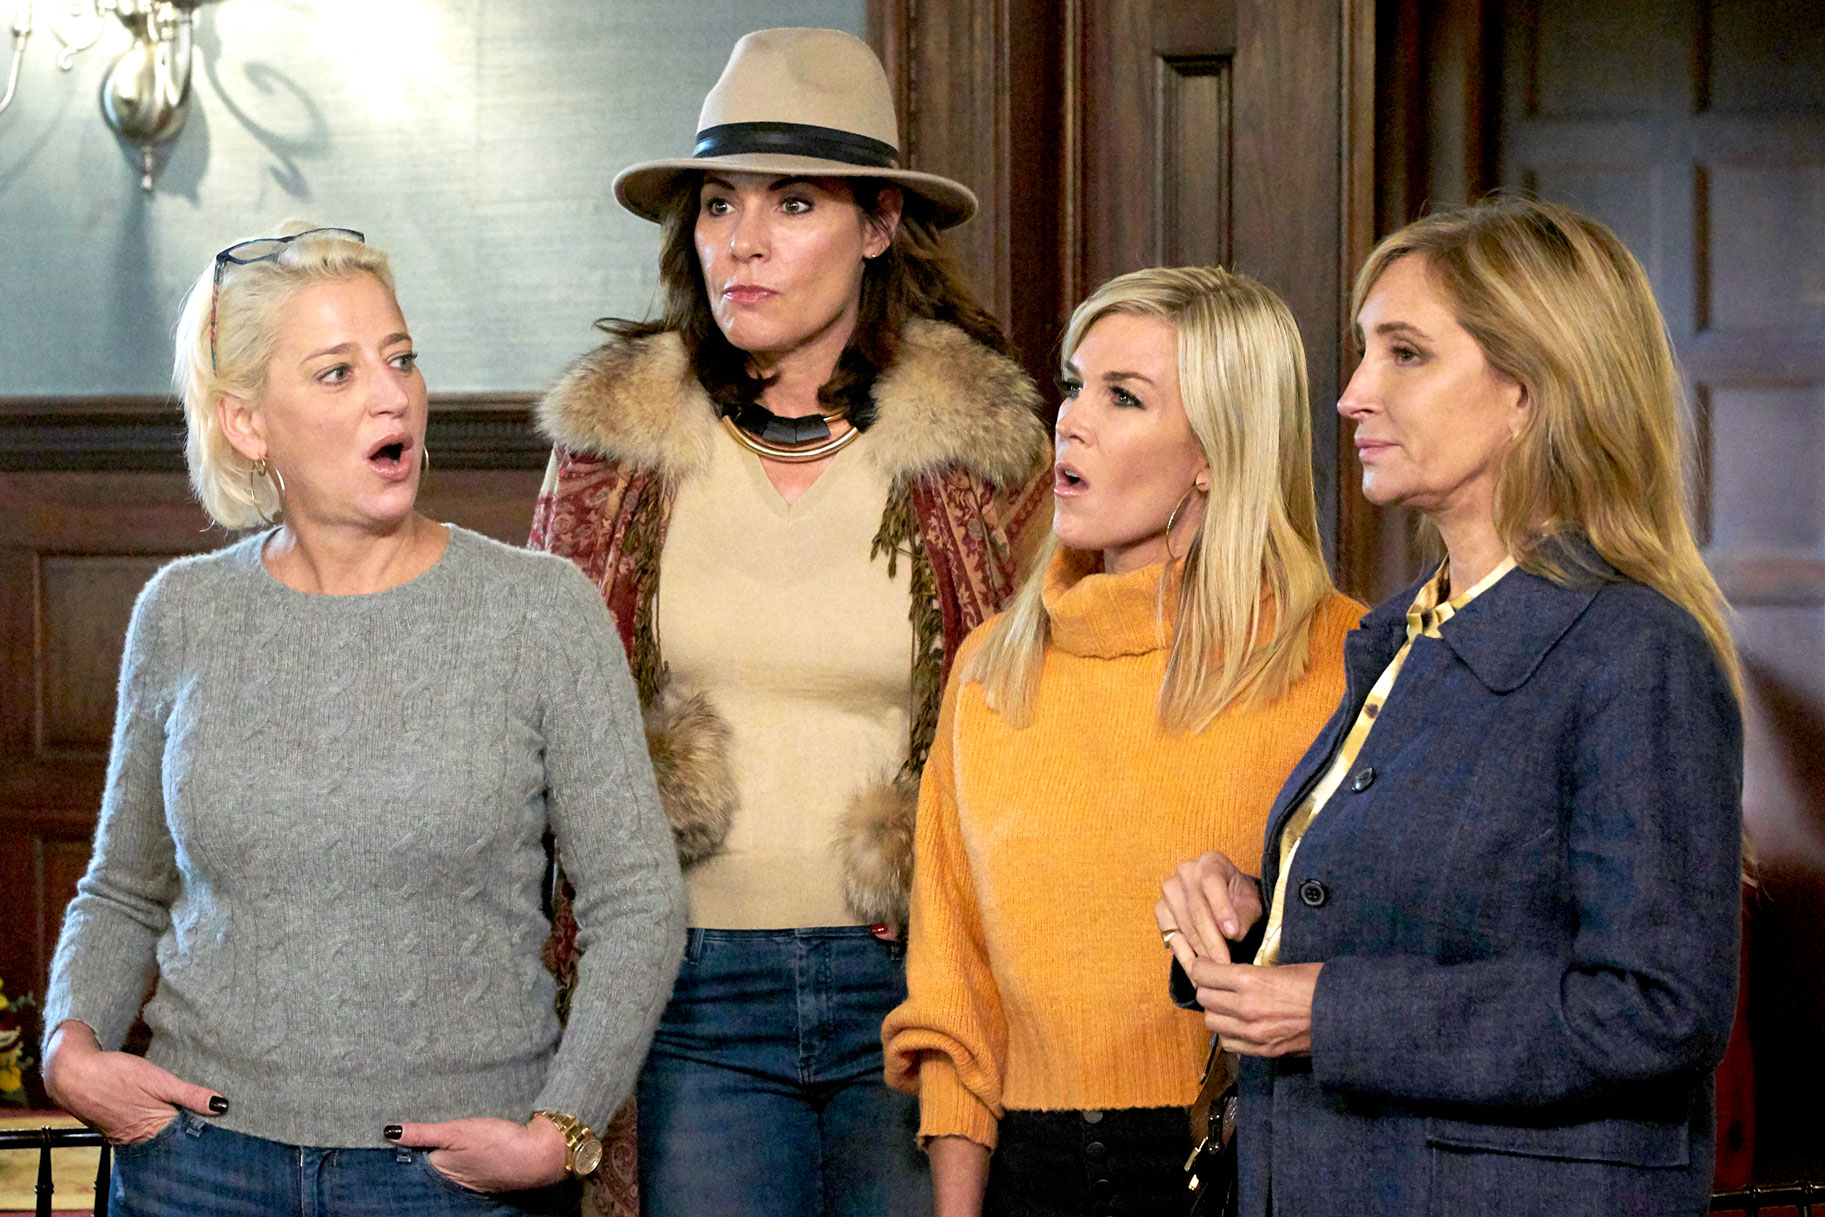 RHONY ladies